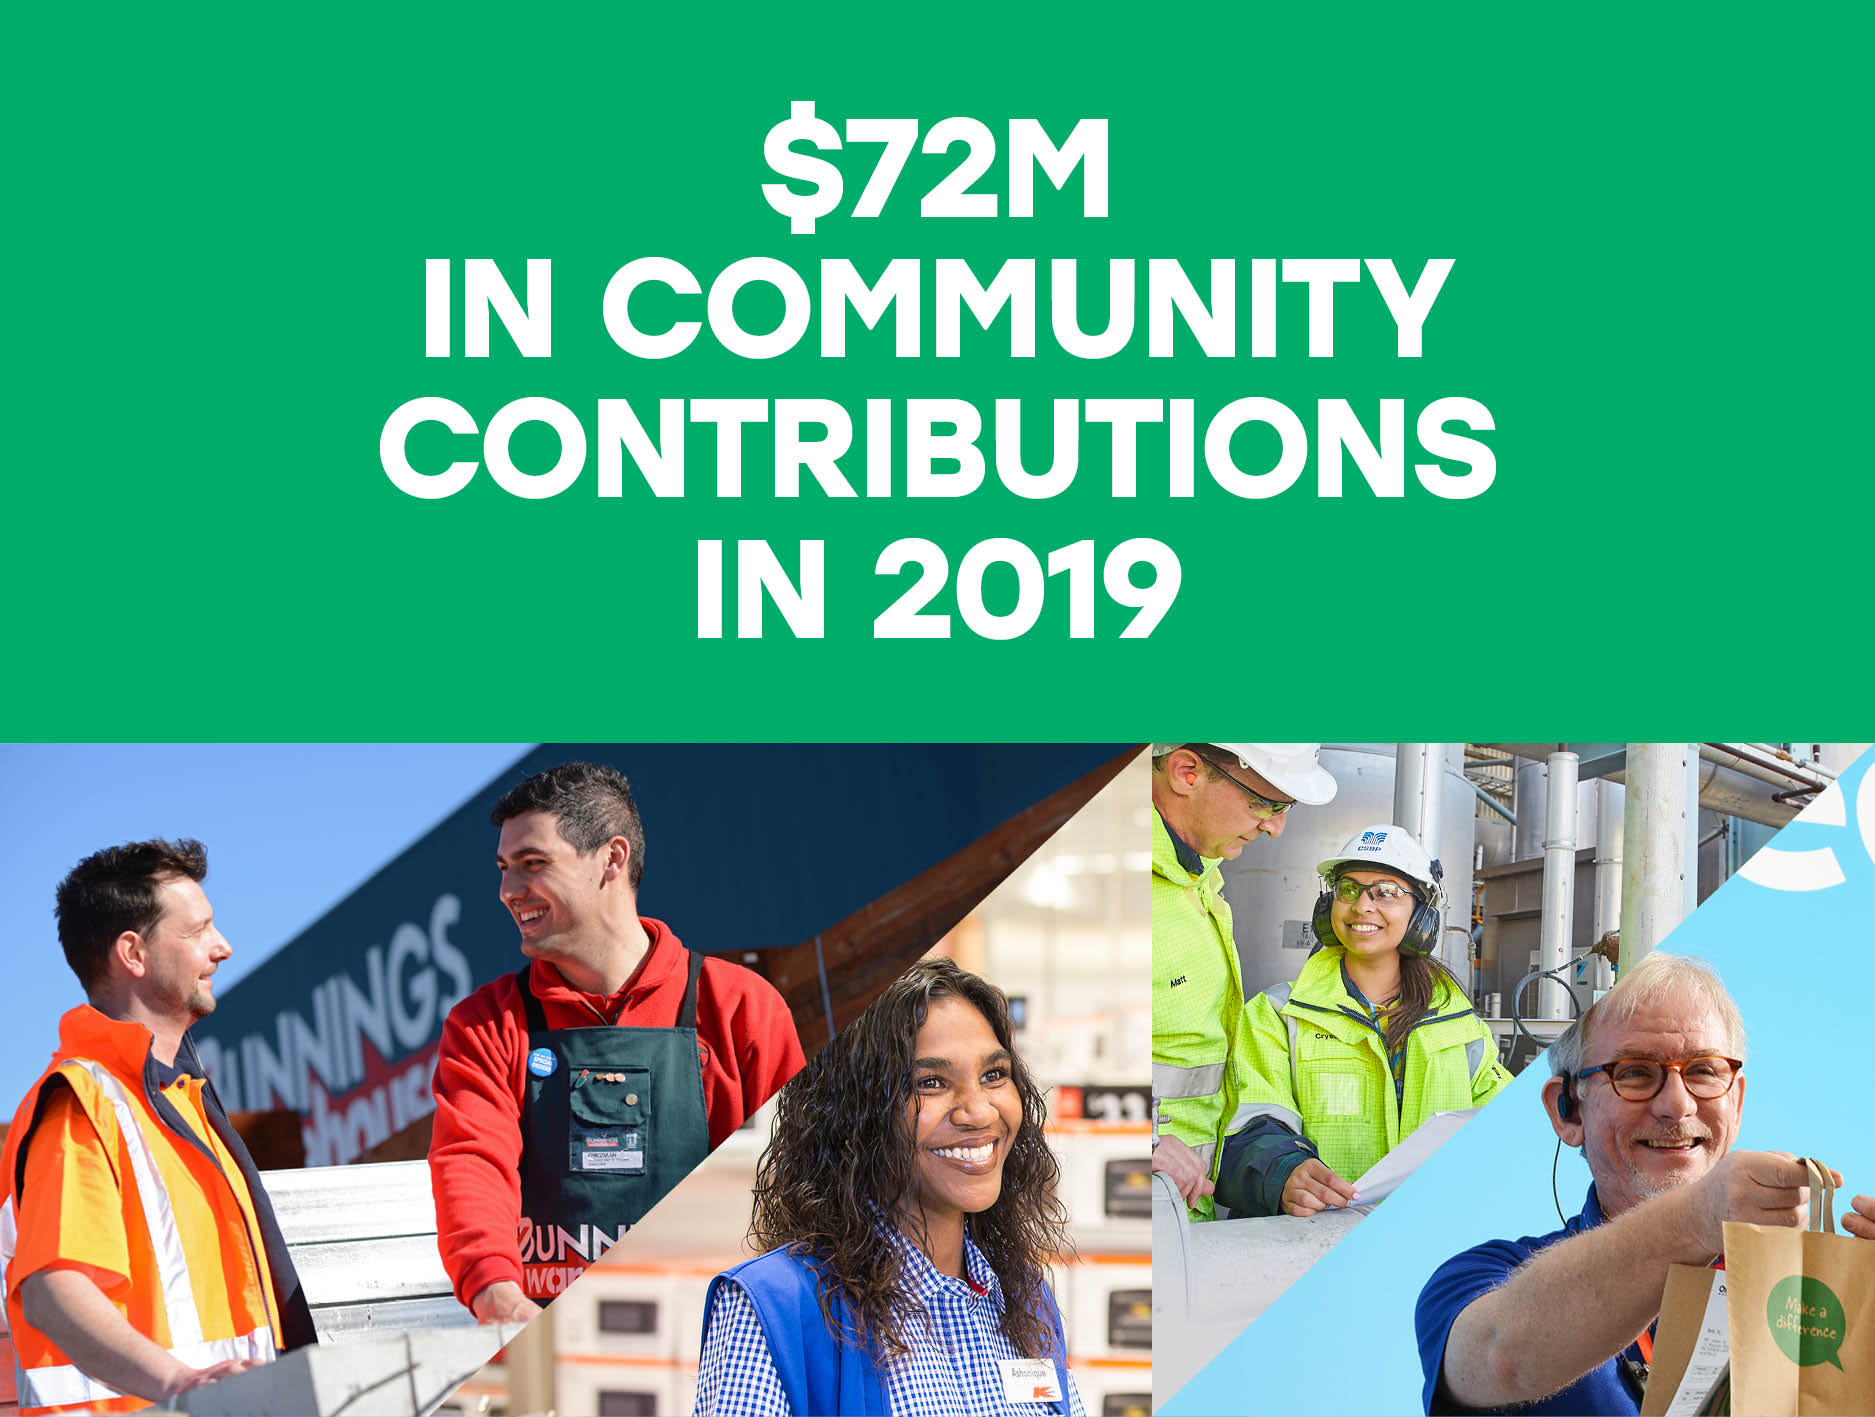 72 million dollars in community contributions in 2019